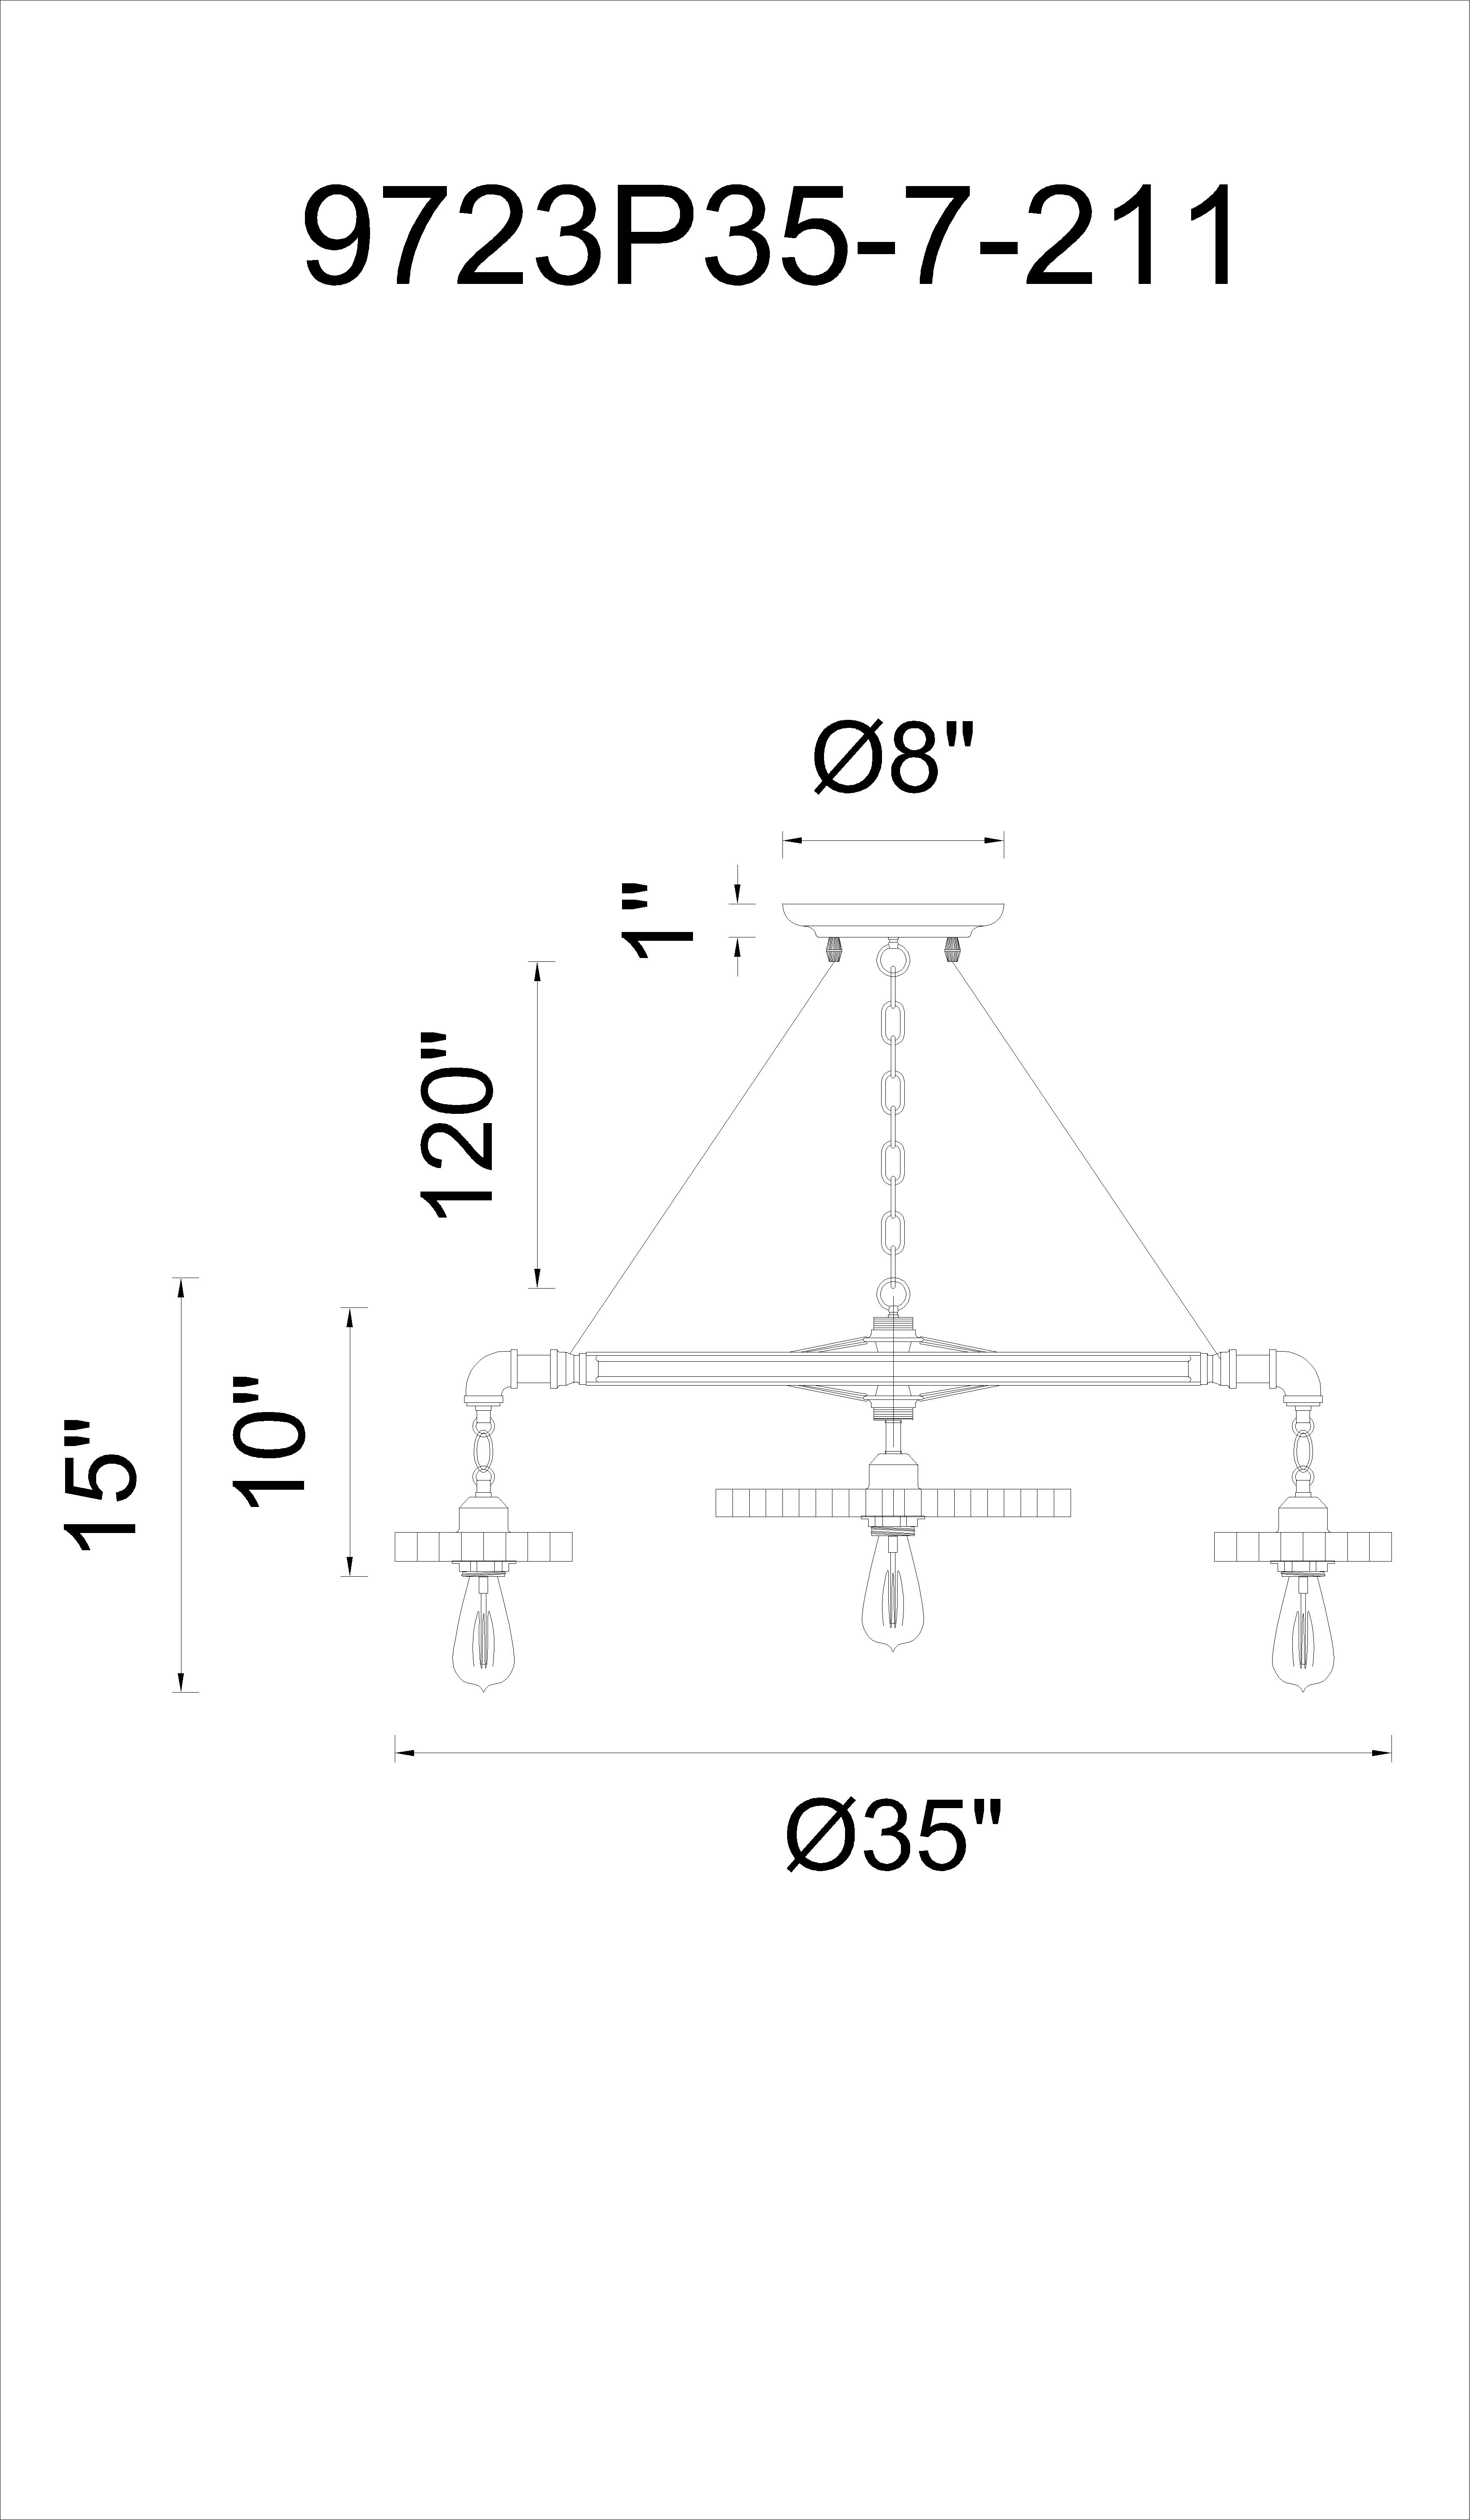 CWI Lighting Prado 7 Light Down Chandelier With Blackened Copper Model: 9723P35-7-211 Line Drawing